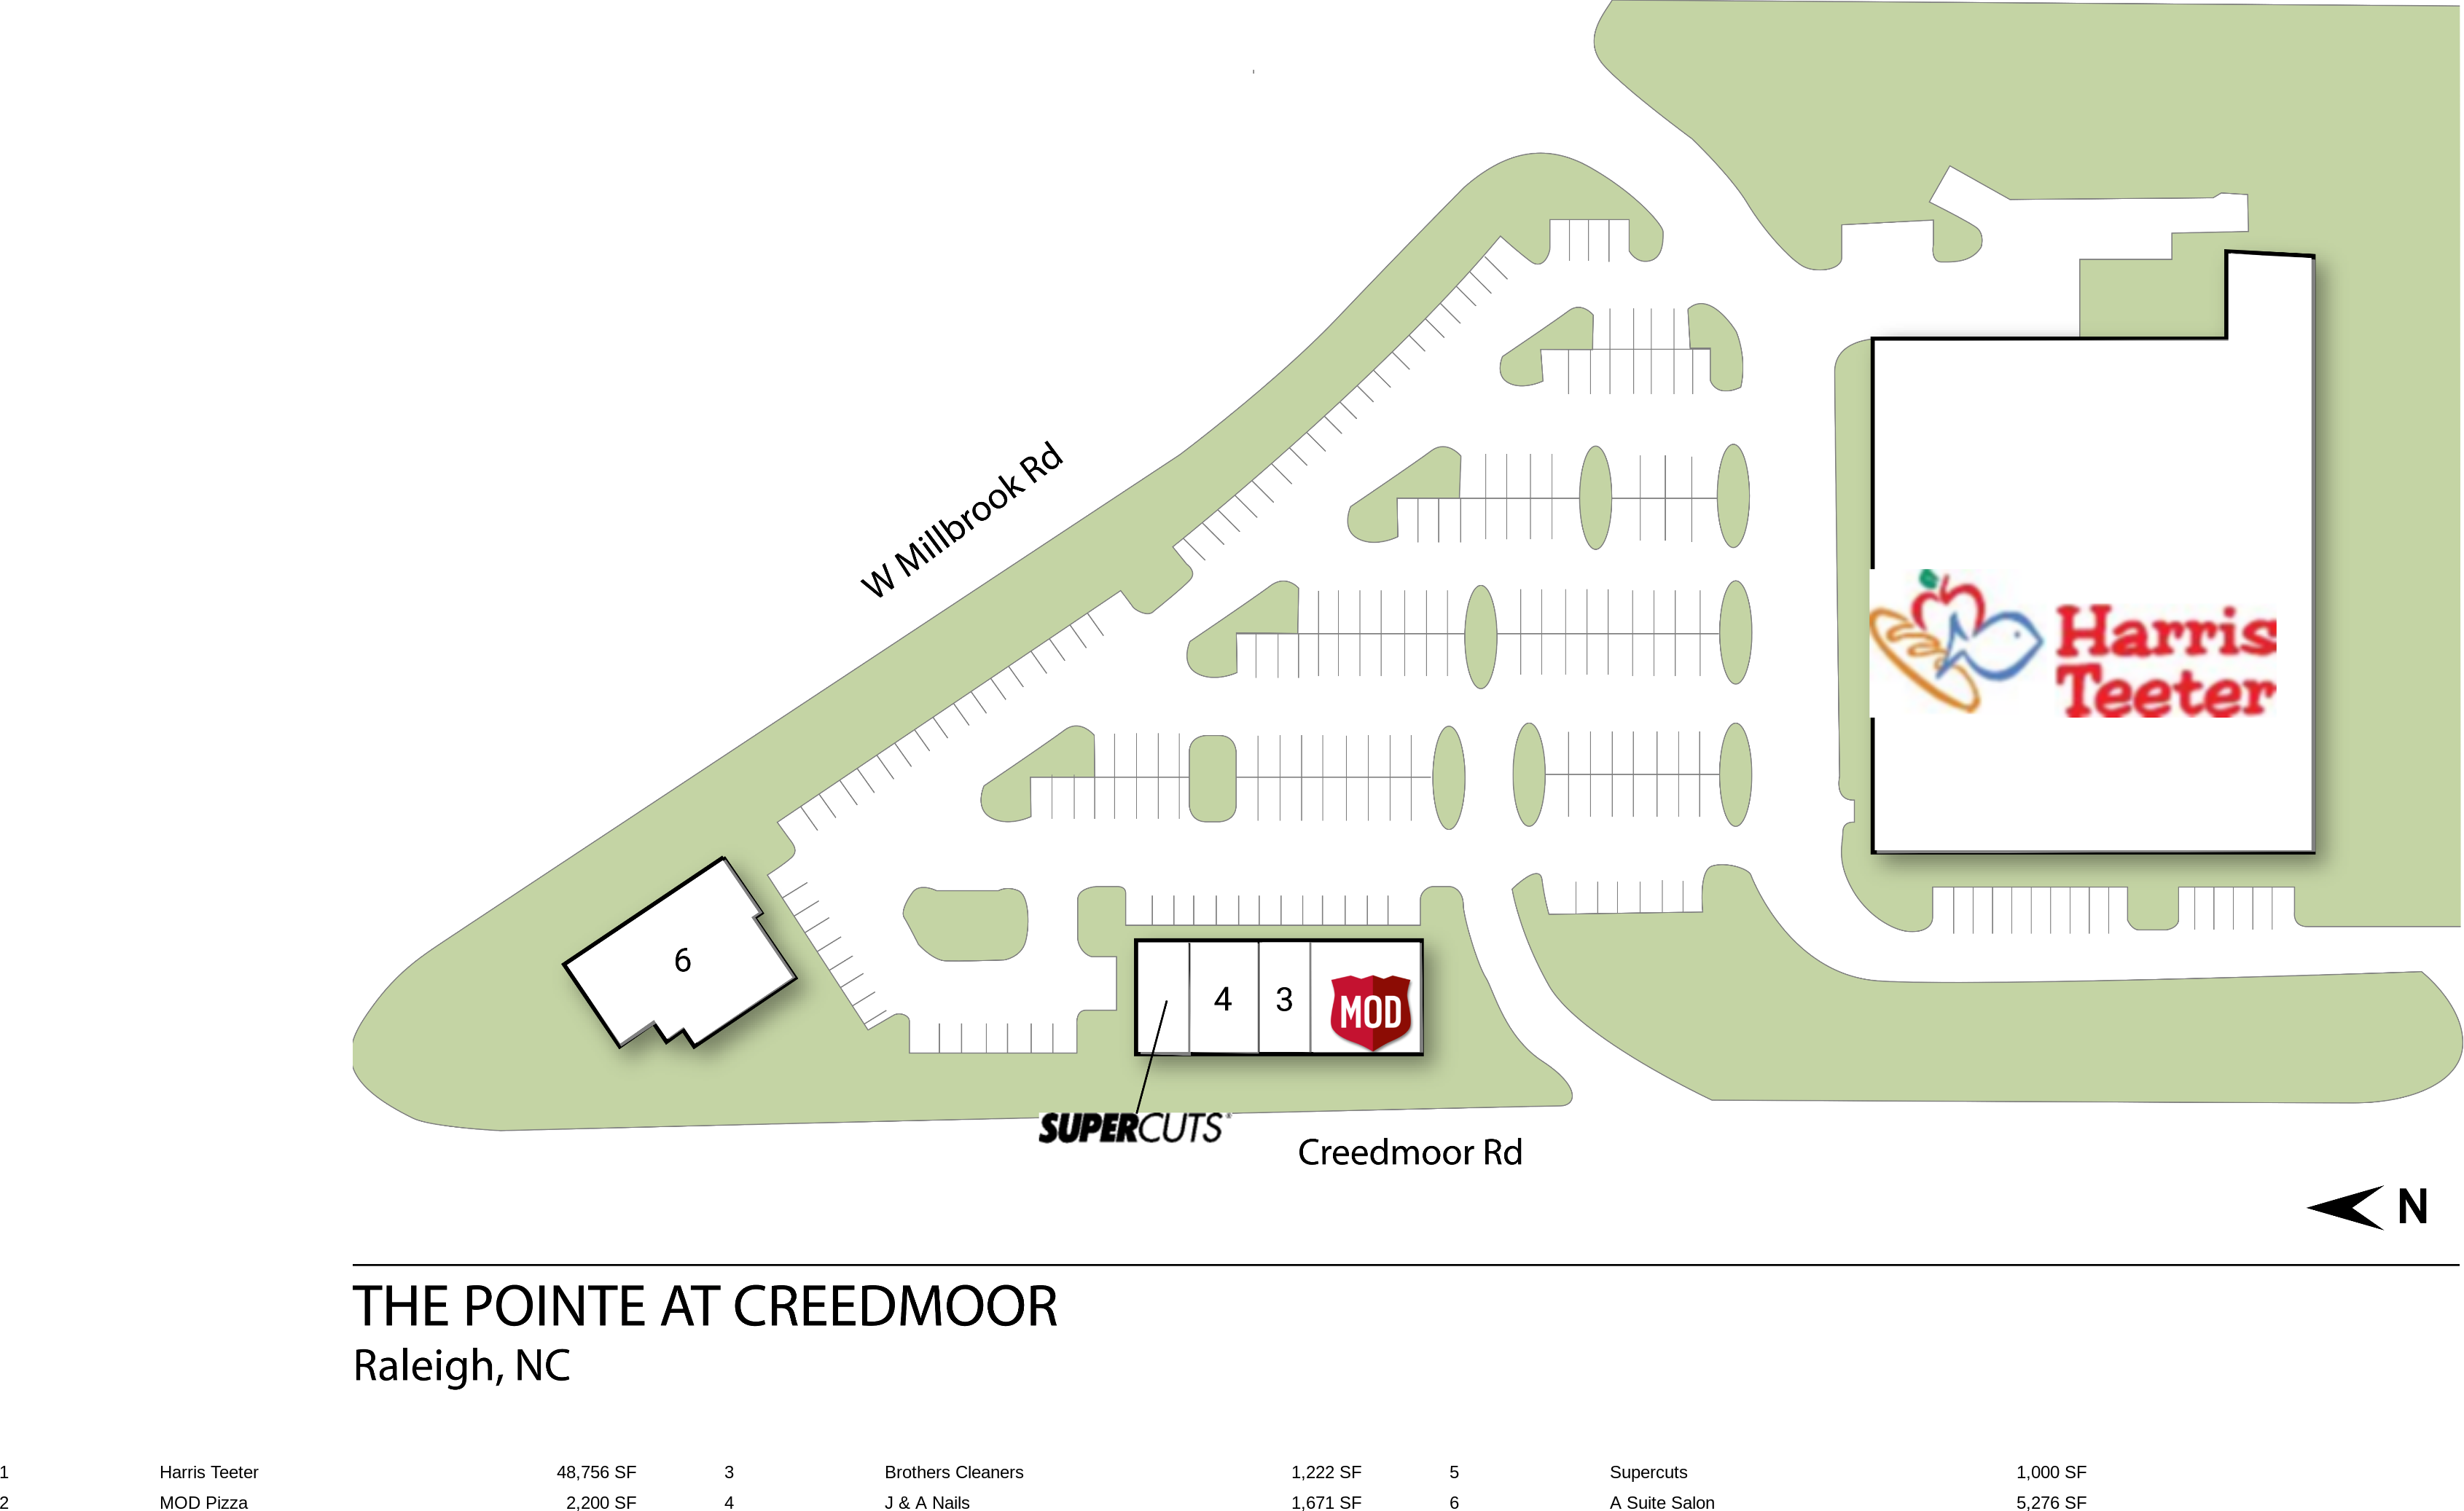 Raleigh NC: The Pointe at Creedmoor - Retail Space - InvenTrust